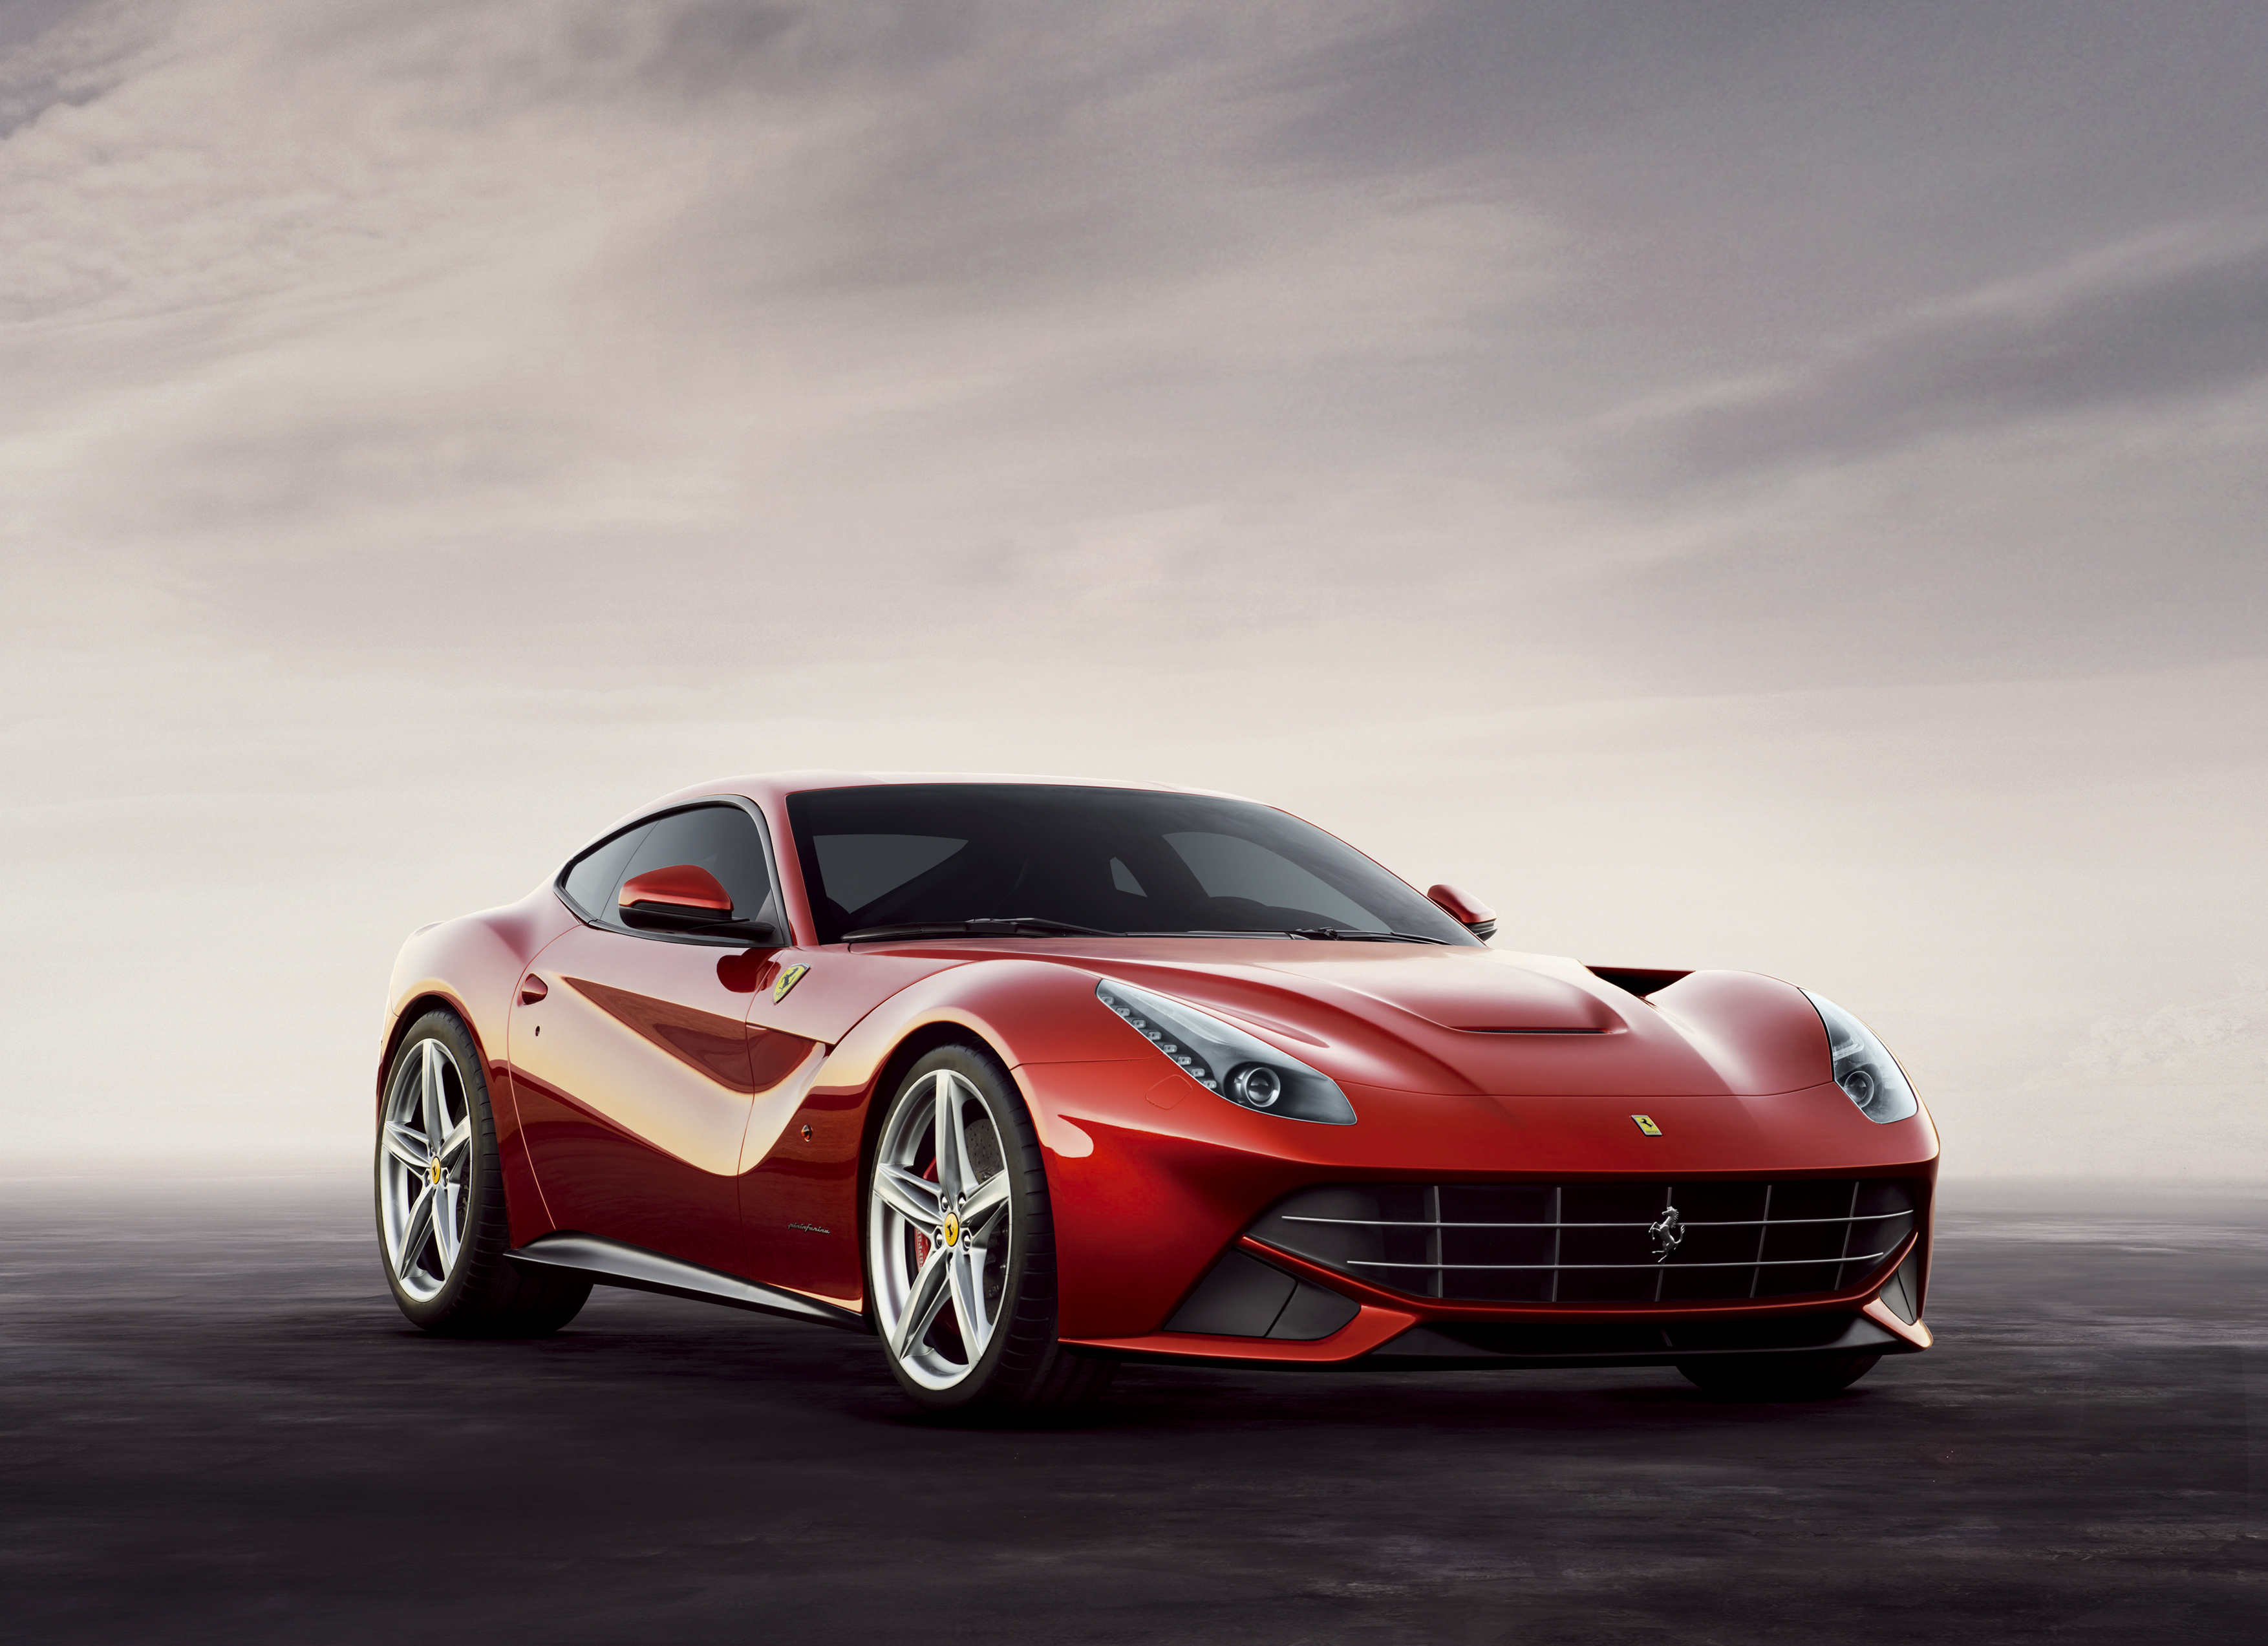 FERRARI F12 BERLINETTA- Ultimate Dream Cars